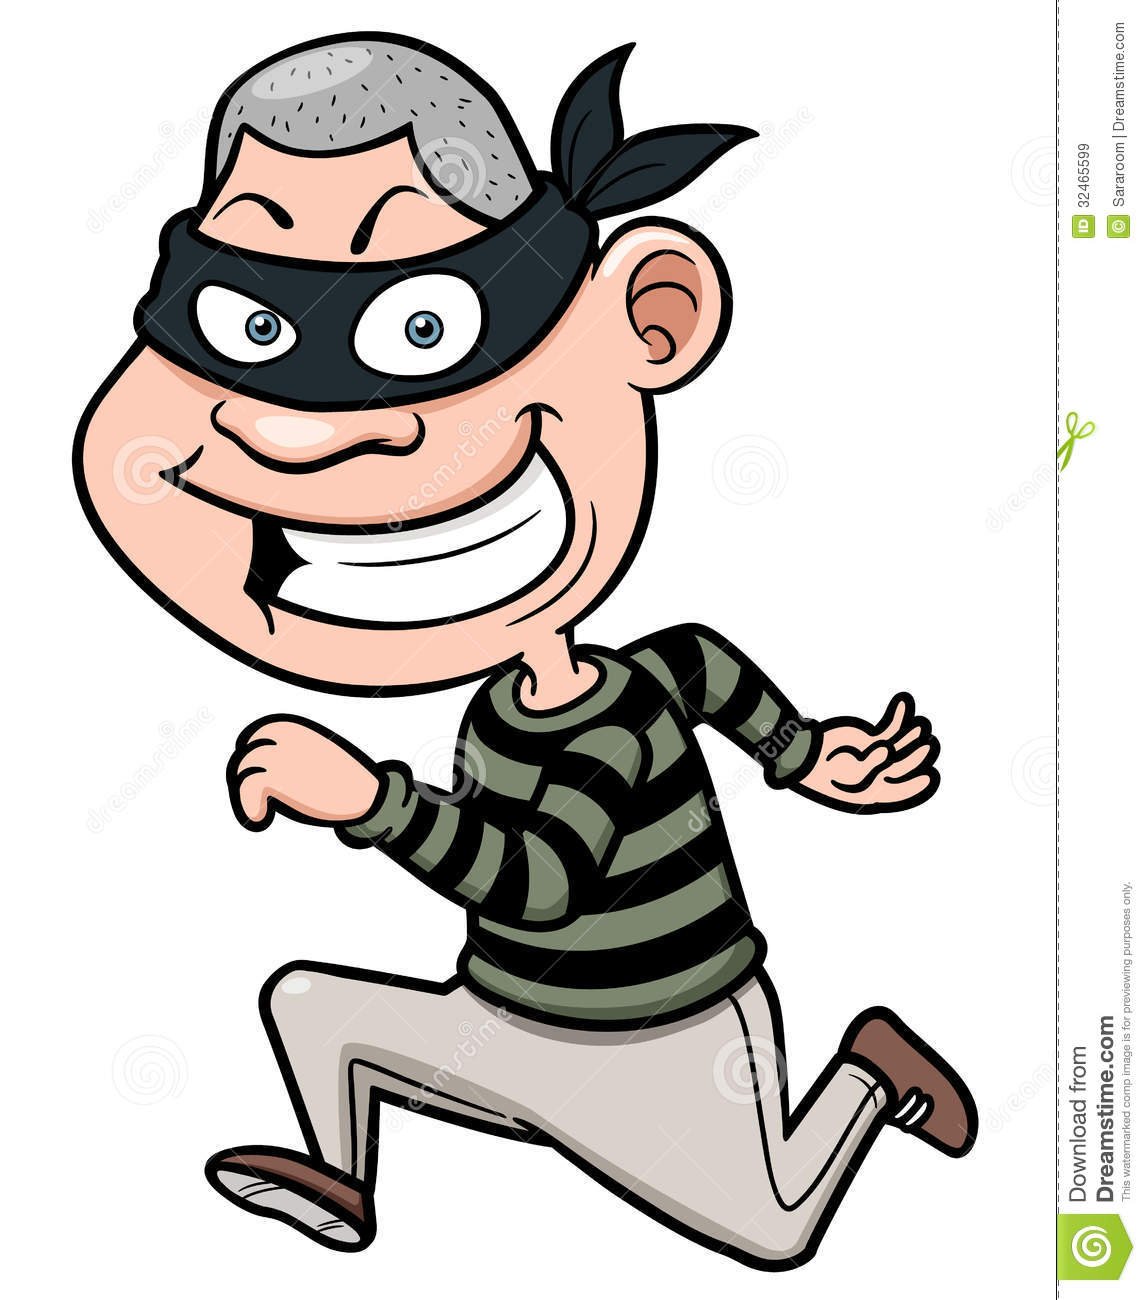 Cartoon Thief Running Royalty Free Stock Images   Image  32465599